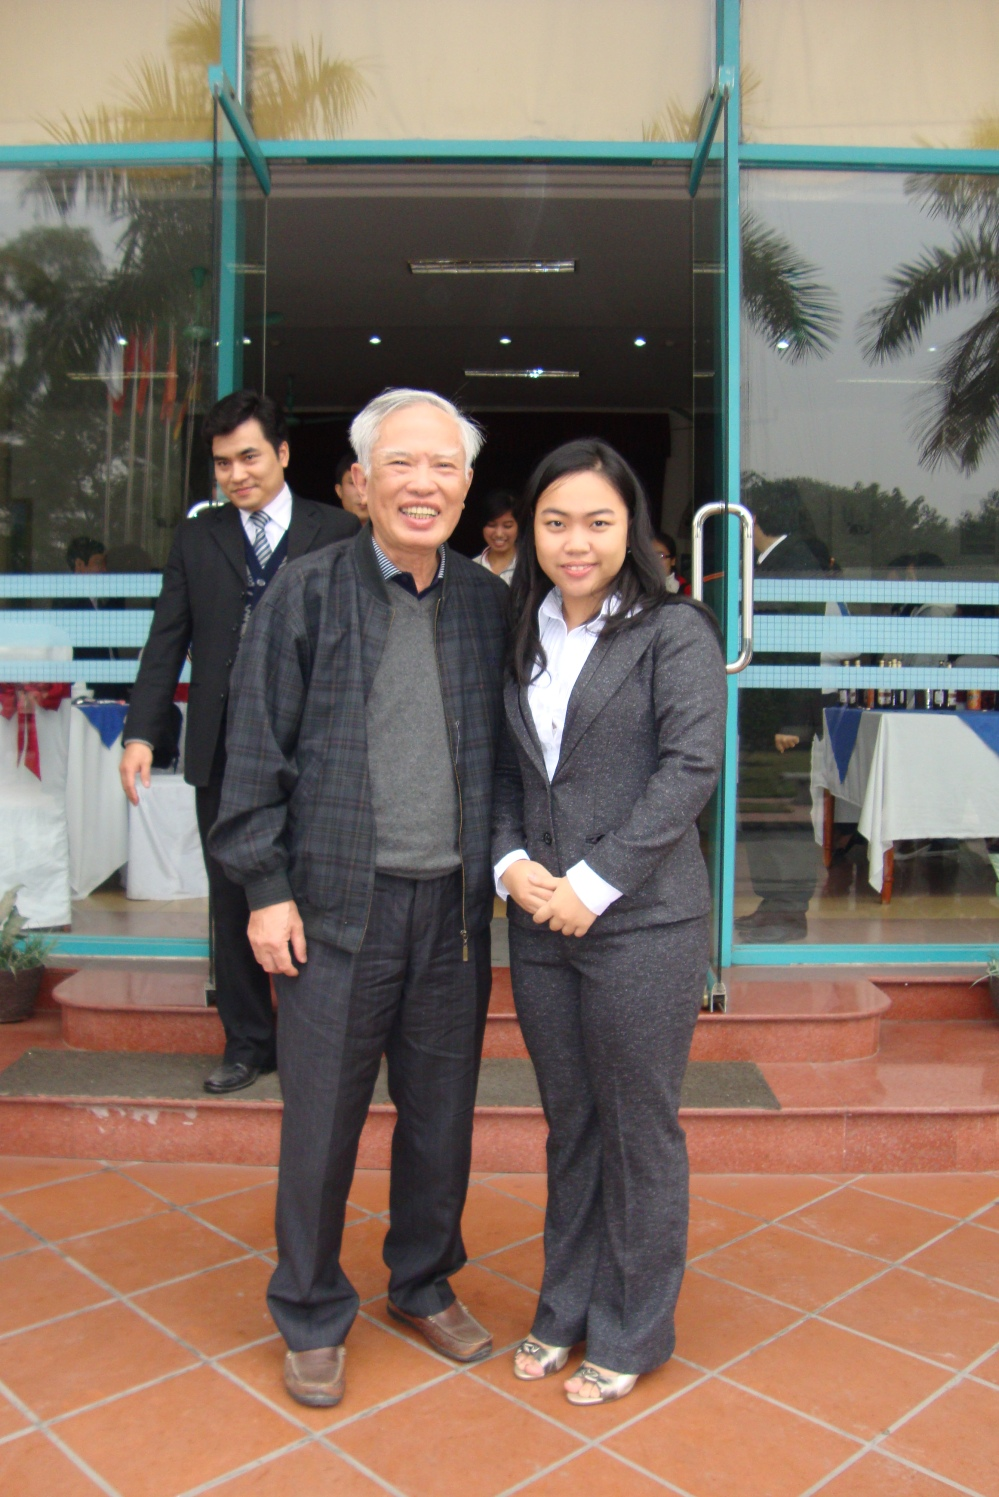 Me and Mr. Vu Khoan former Deputy Prime Minister